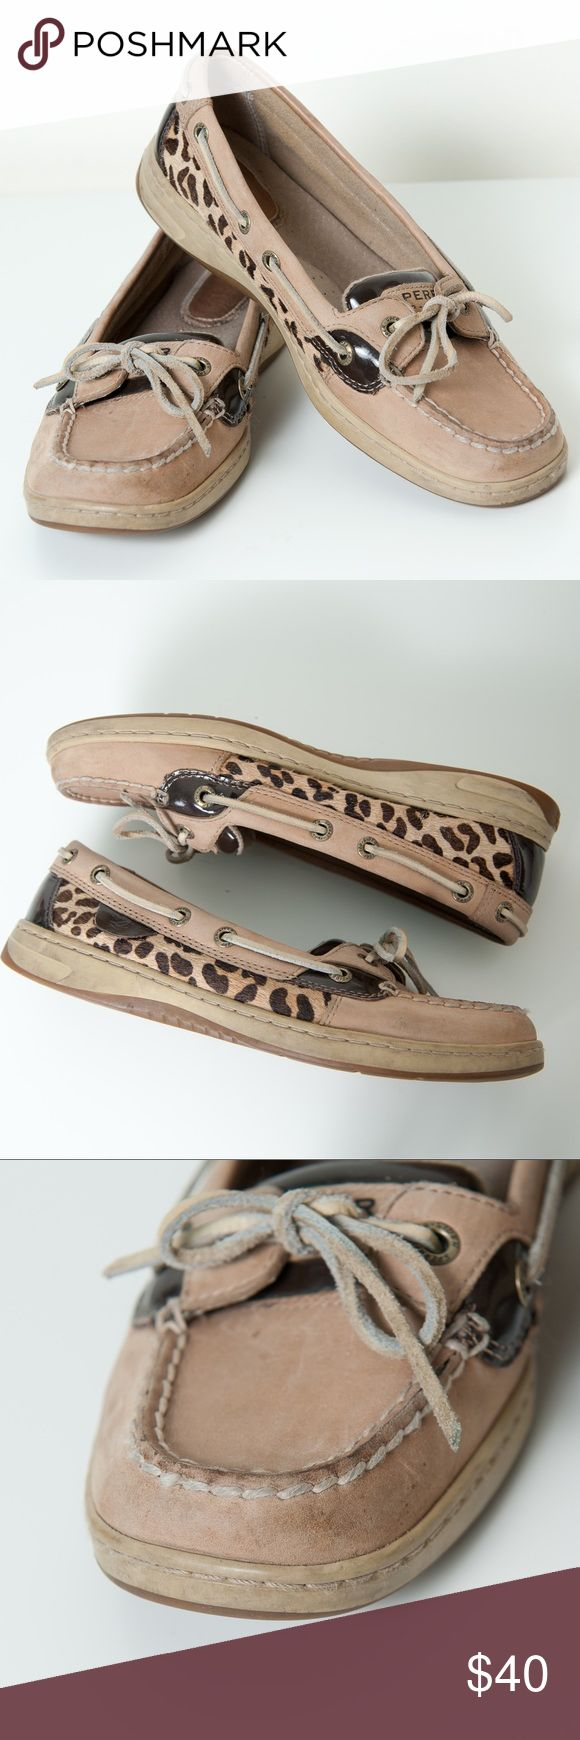 Sperry Angelfish Deck 7.5 Cheetah Print Tan Brown Sperry Top Sider Angelfish tan leather calf hair cheetah paneled with brown patent leather accents. Size 7.5. Shoes are preloved and do show signs of some wear. Sperry Top-Sider Shoes Flats & Loafers